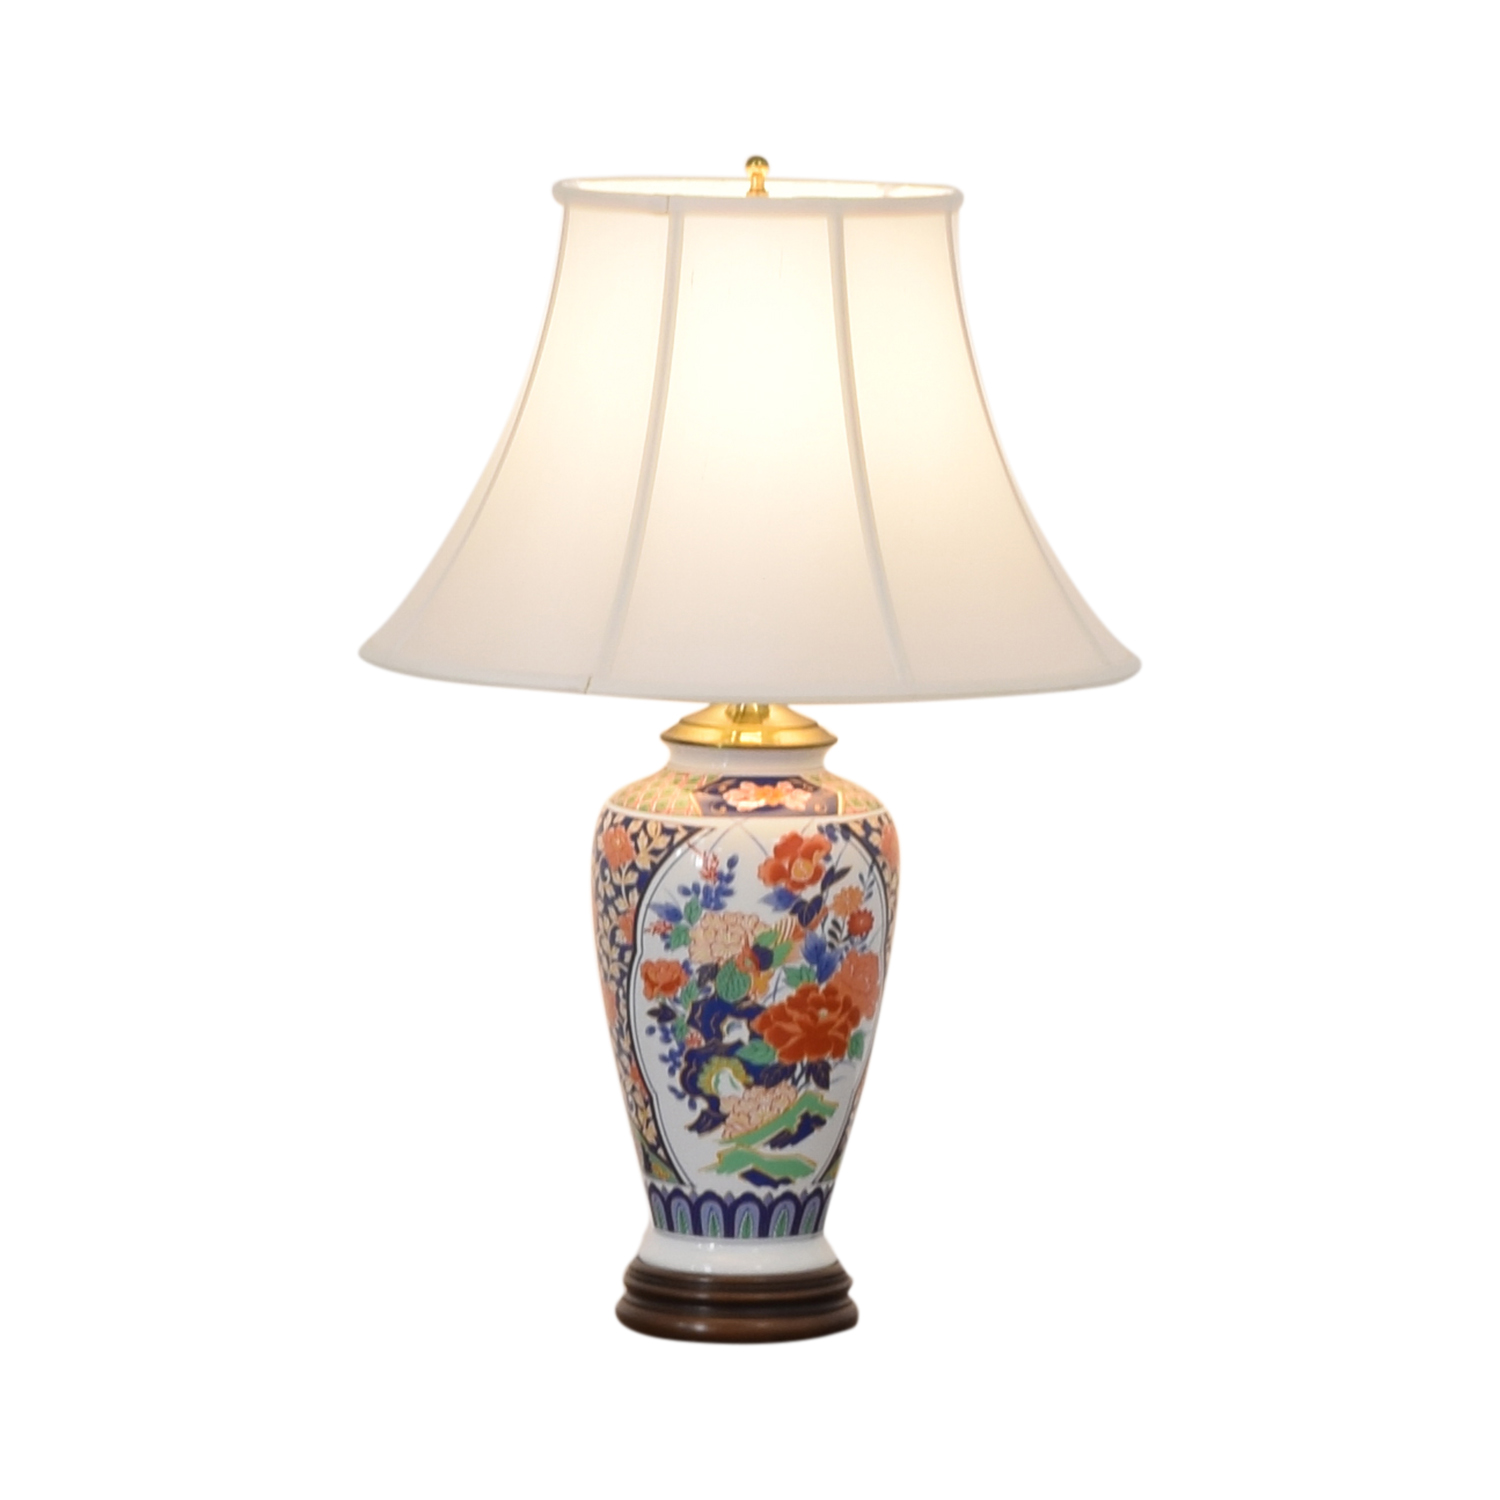 Japanese Imari Porcelain Table Lamp coupon